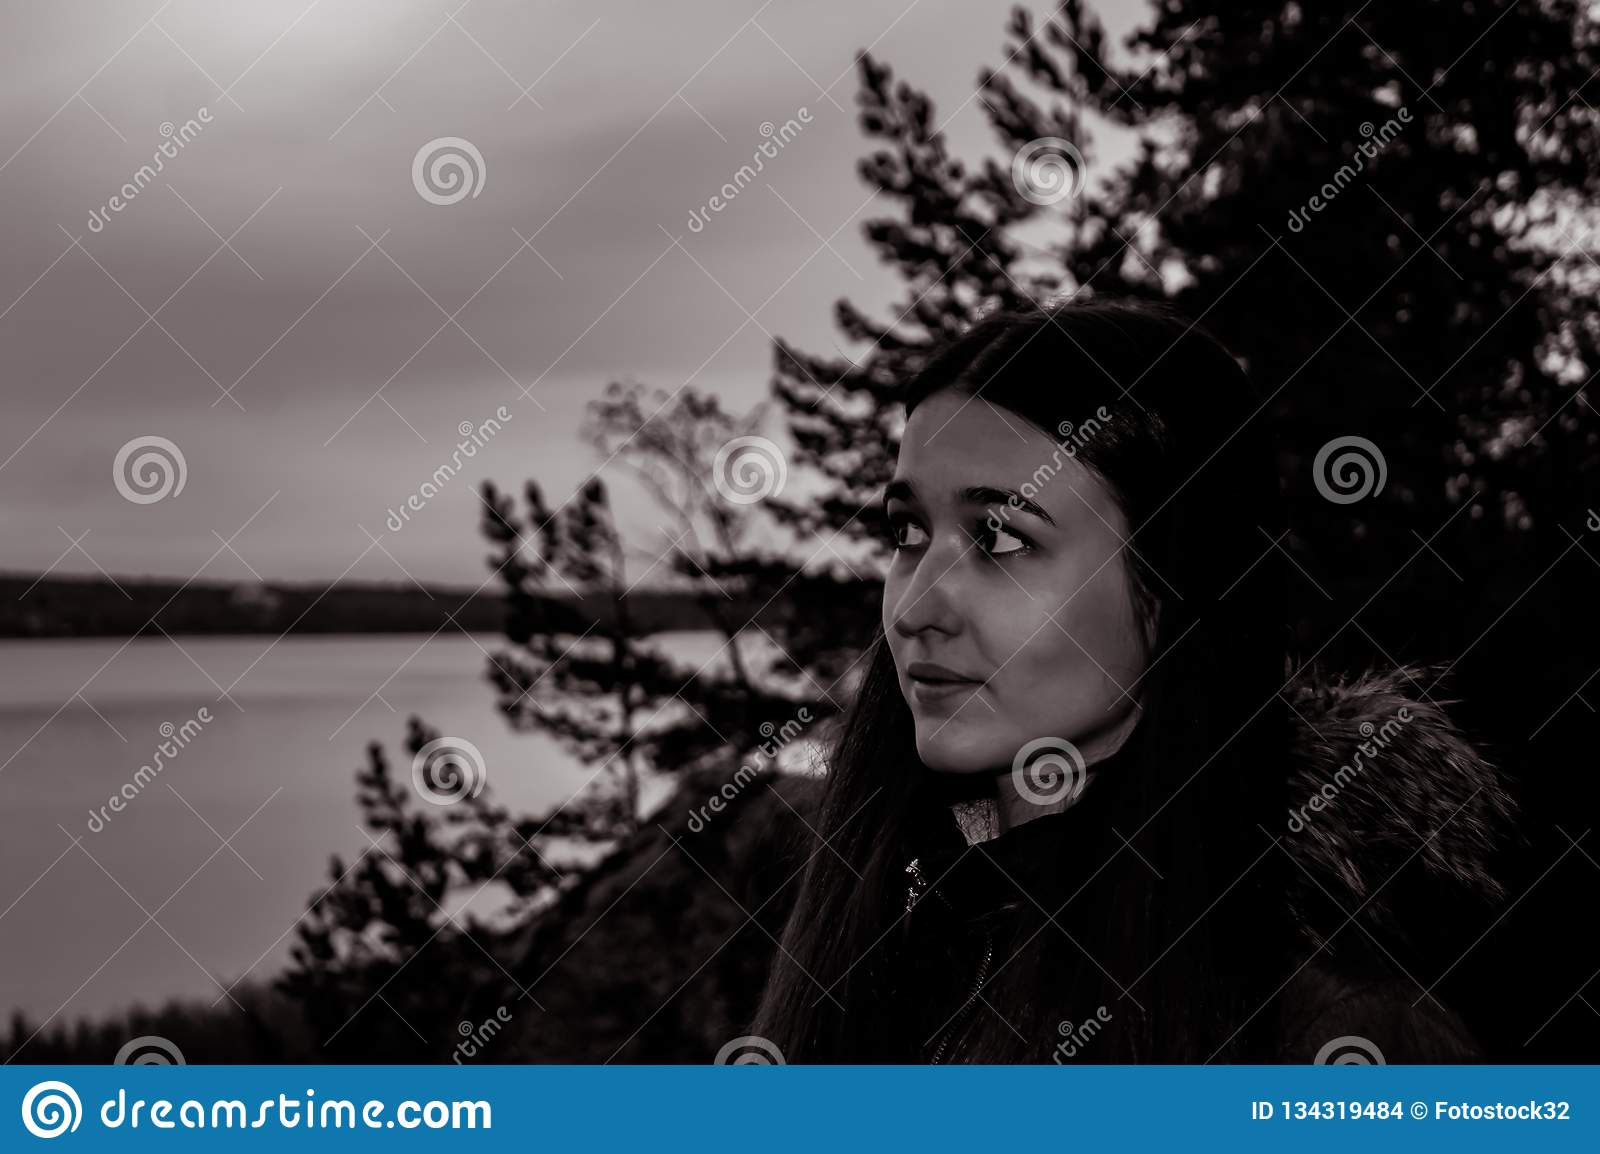 Girl in the twilight forest